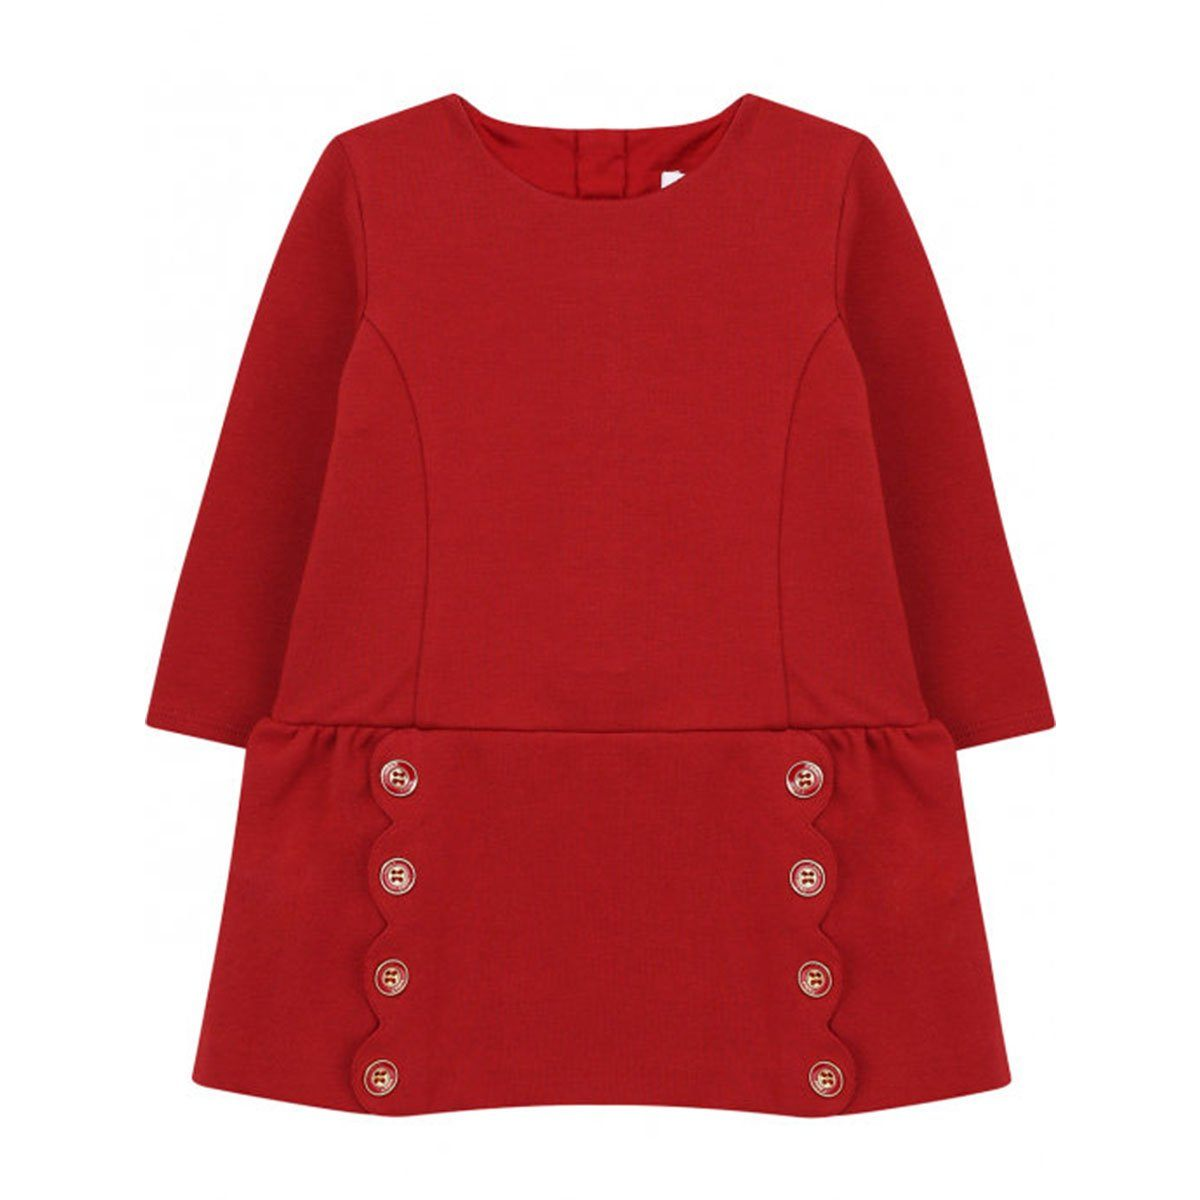 Chloe - Dress For Girls, Dark Red